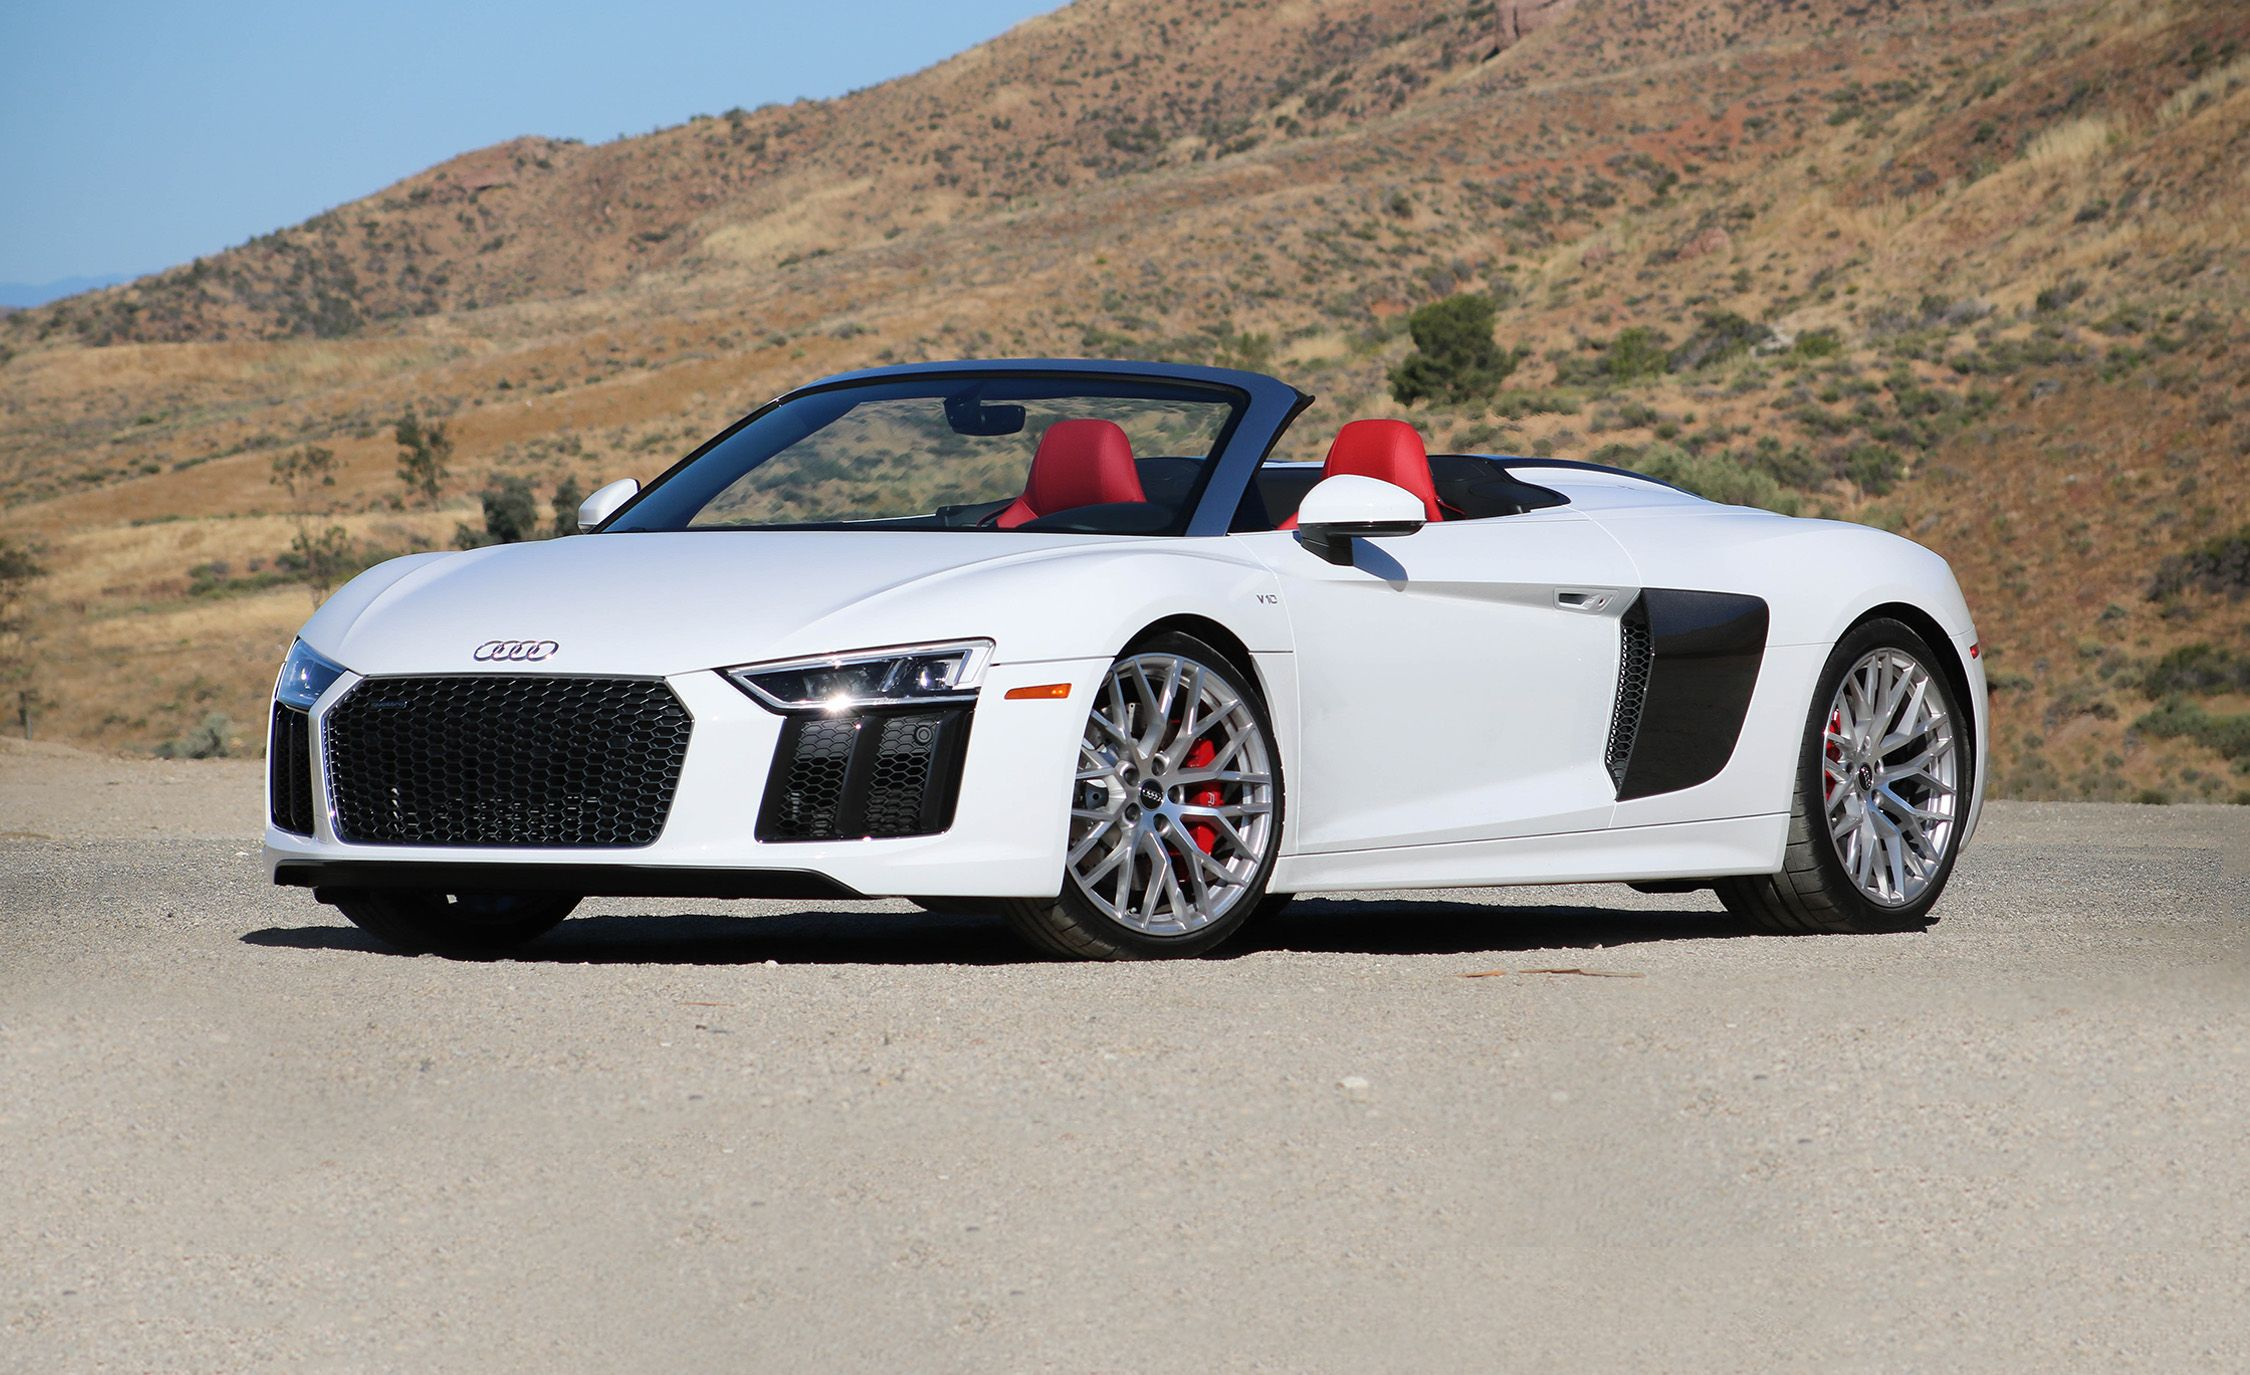 2017 Audi R8 Spyder Instrumented Test Review